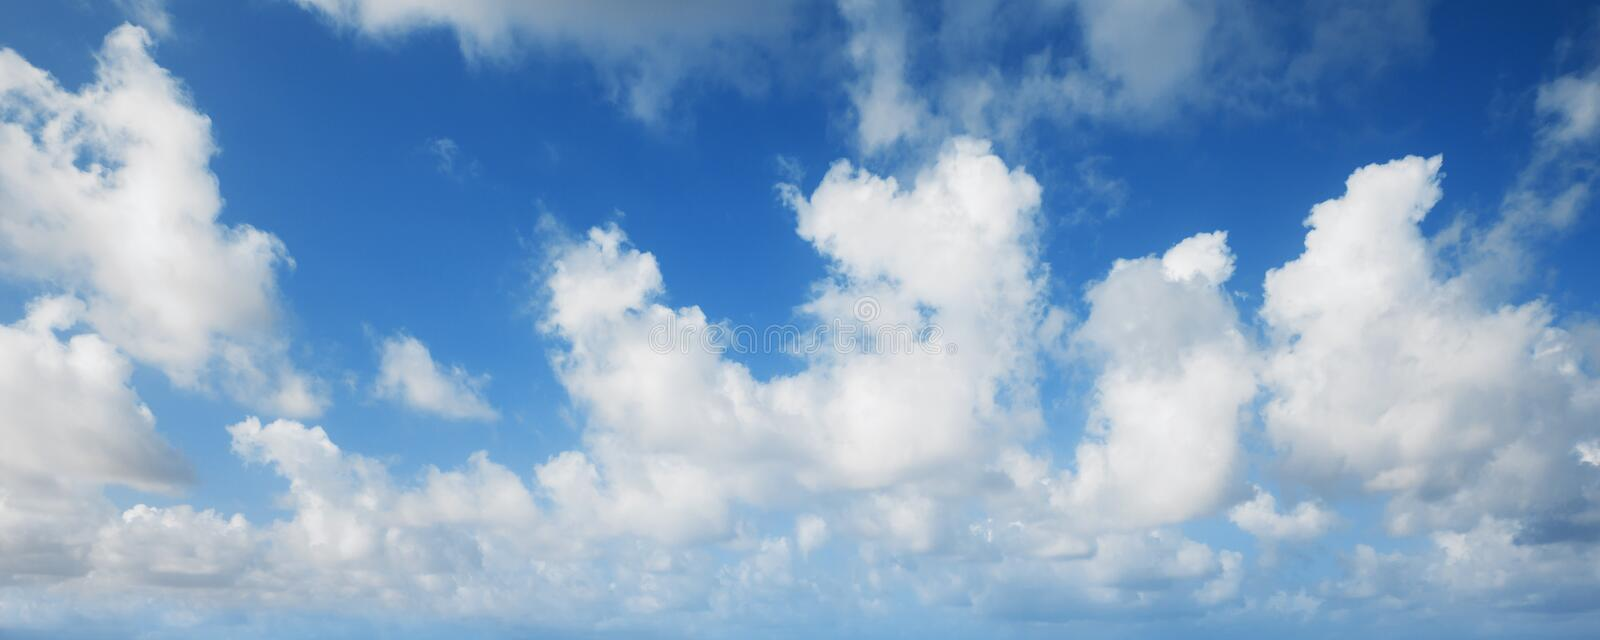 Blue sky with white clouds panoramic background stock photo download blue sky with white clouds panoramic background stock photo image 50916332 voltagebd Choice Image